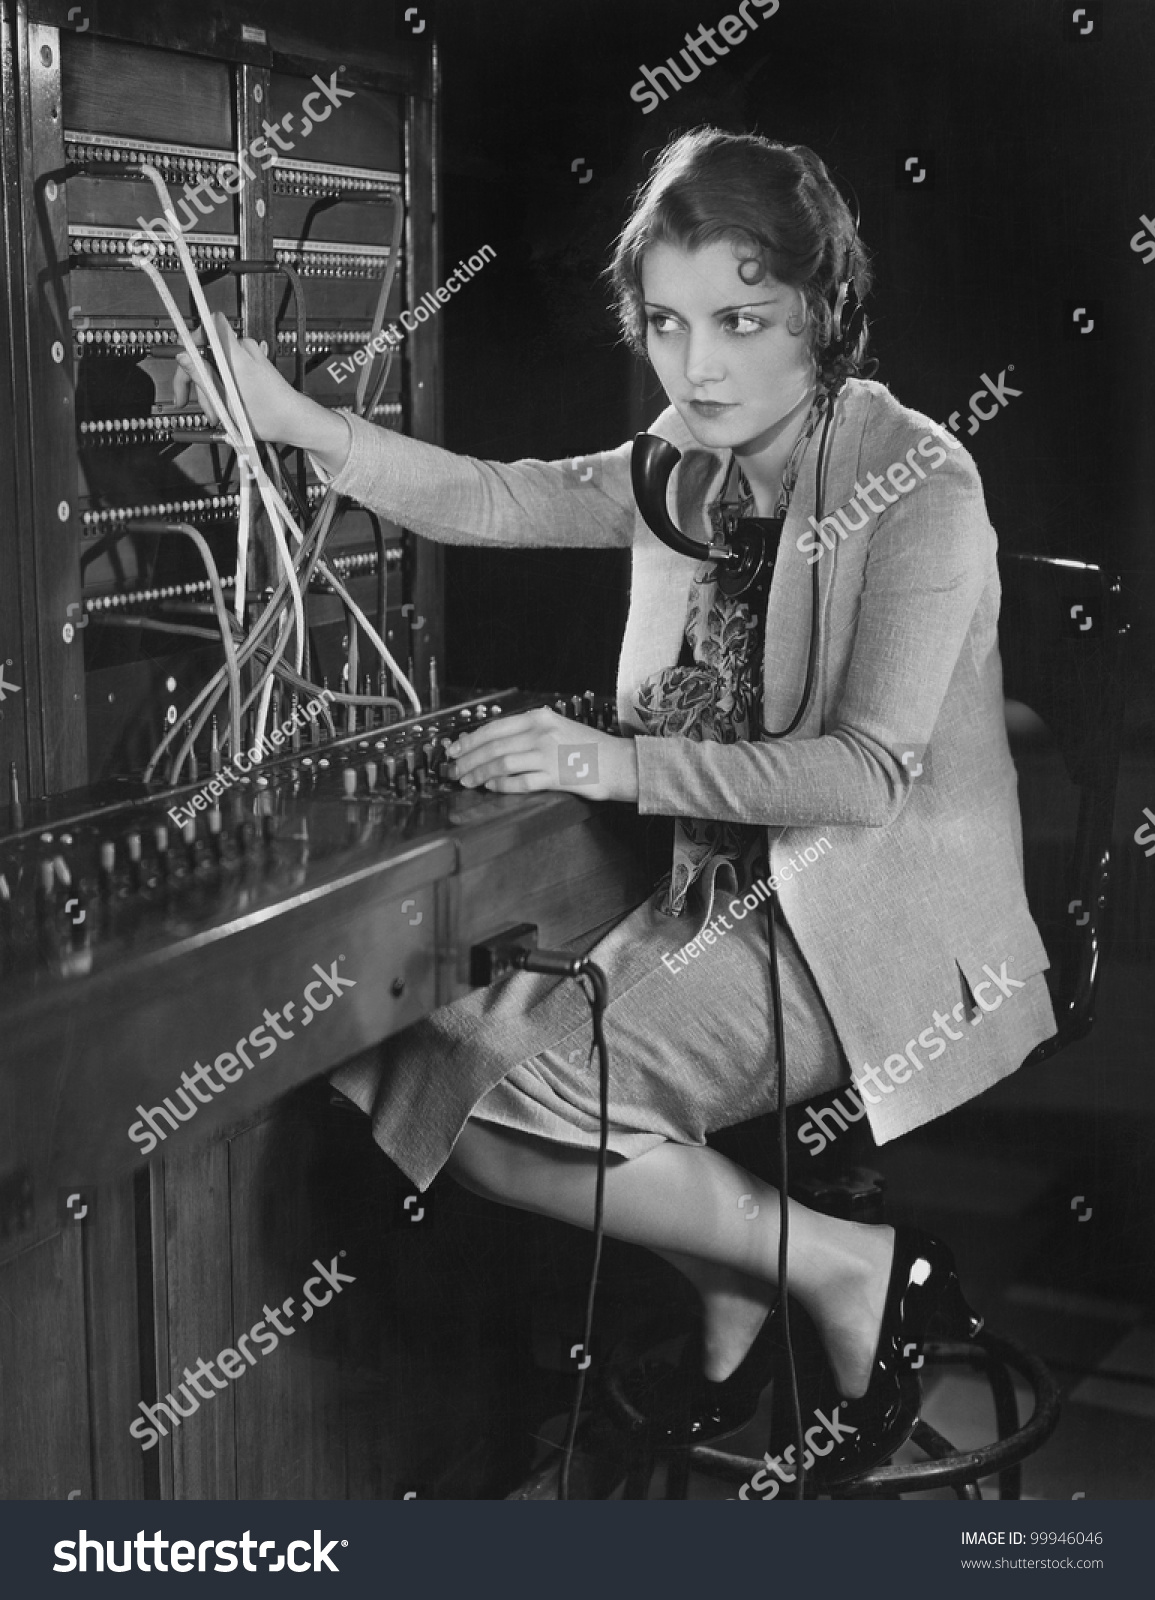 switchboard fotografie snímky a obrázky shutterstock portrait of telephone operator stock photo